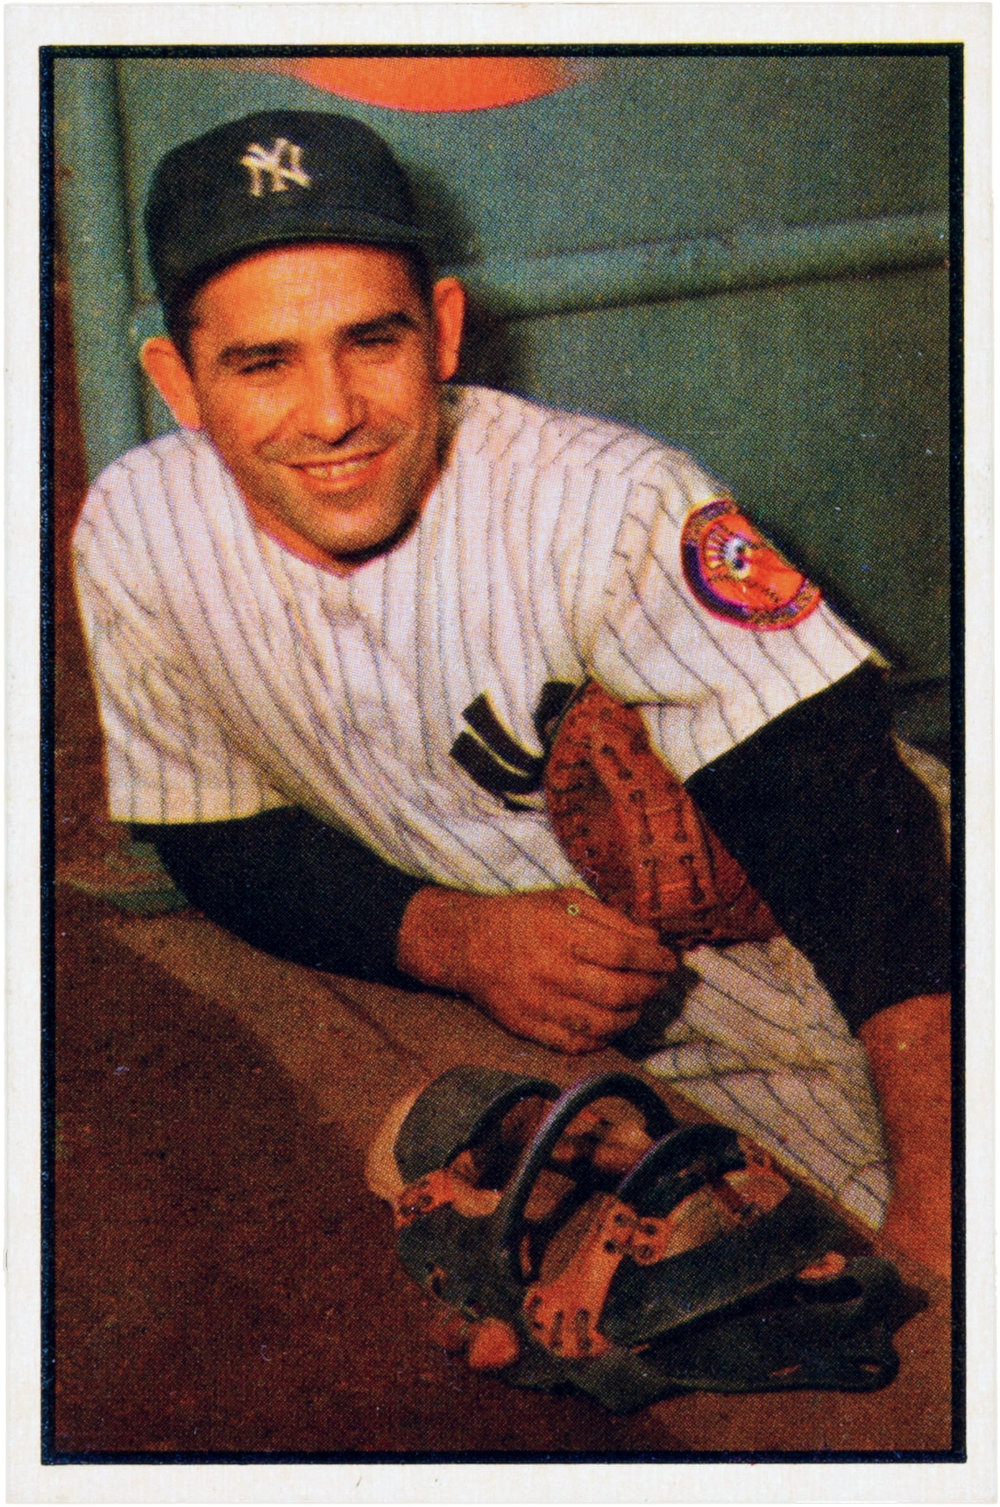 """18 time all-star, 10 time world series champion, and hall of fame catcher and New York Yankee legend Yogi Berra, from  https://en.wikipedia.org/wiki/Yogi_Berra  . One of us (NE) for a short time was proudly nicknamed """"Yogi"""" as a Little League catcher—though not only was he no high caliber baseball player, but there are those who still see the actual Yogi as the better thinker."""